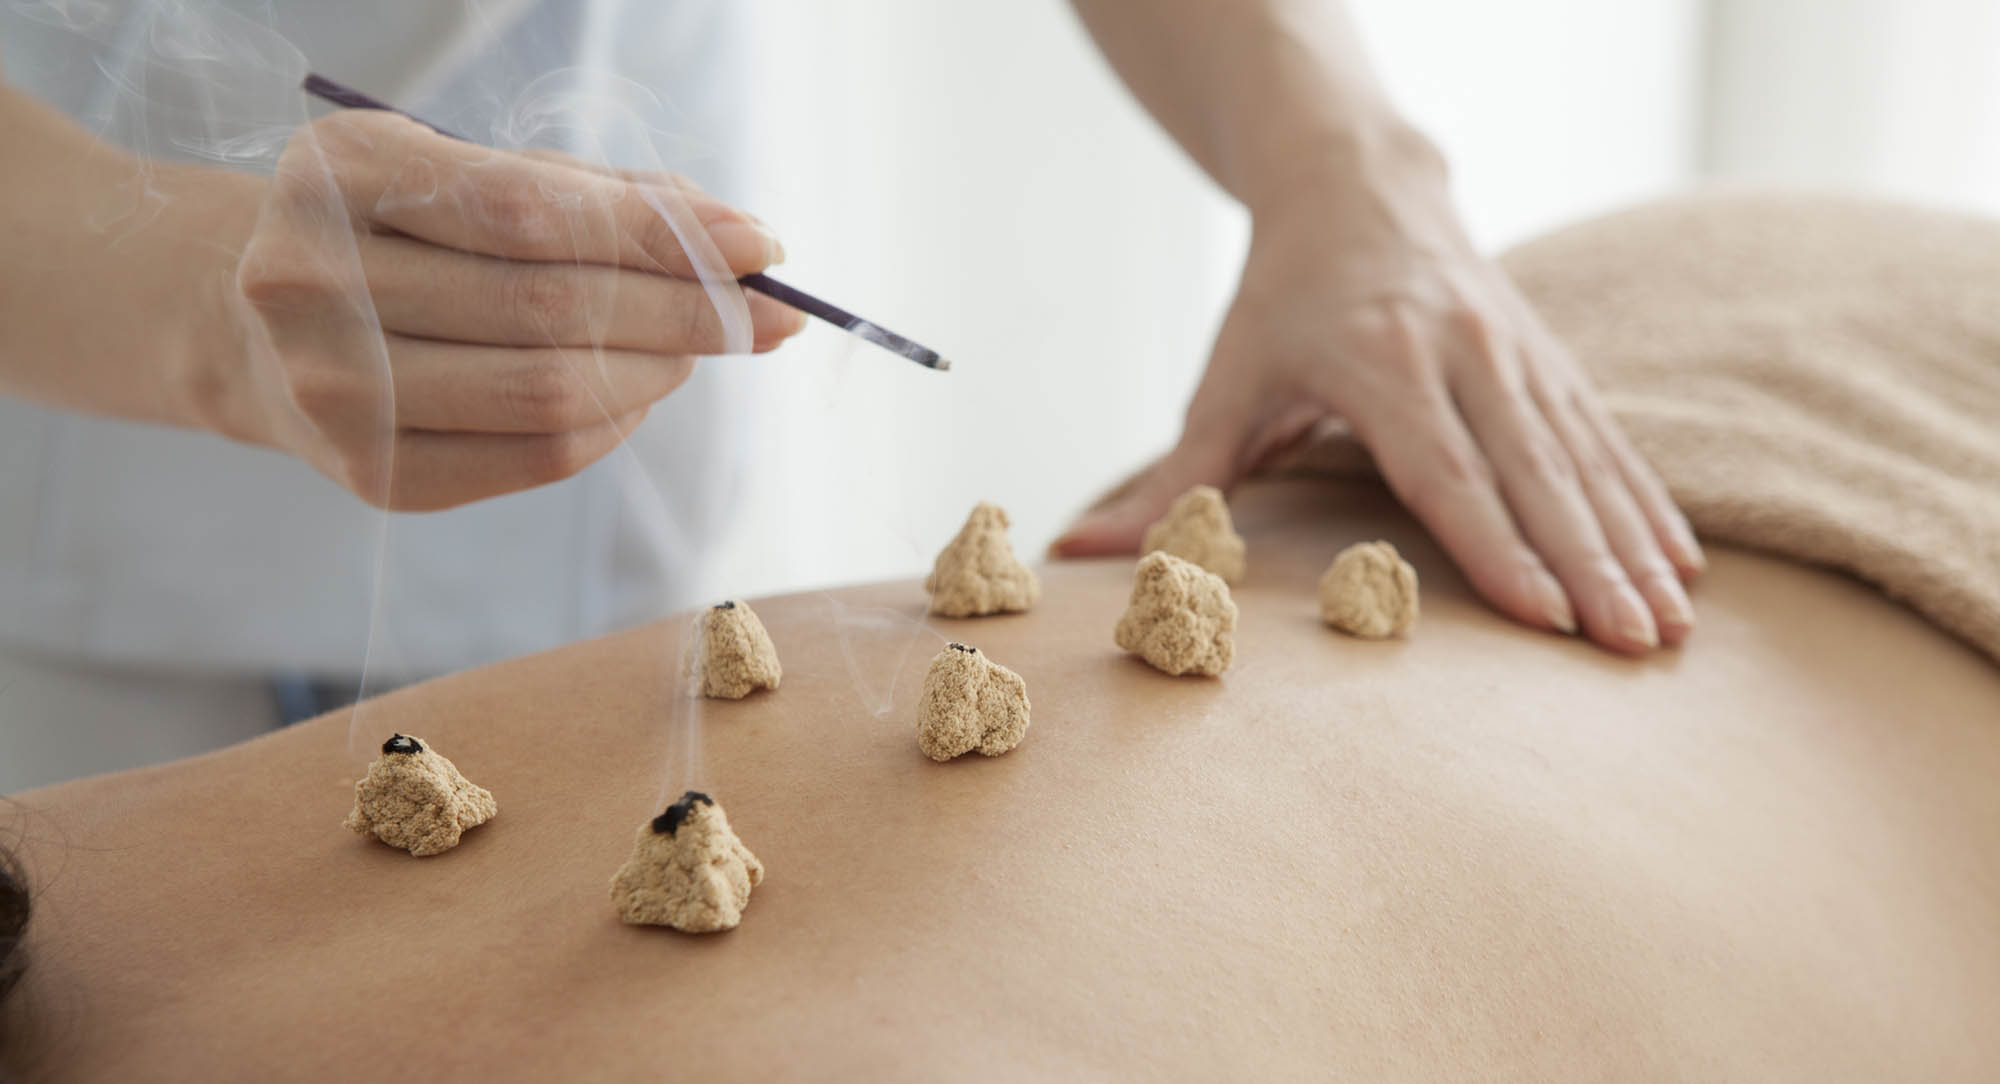 Moxibustion can be done several ways, to include placing the